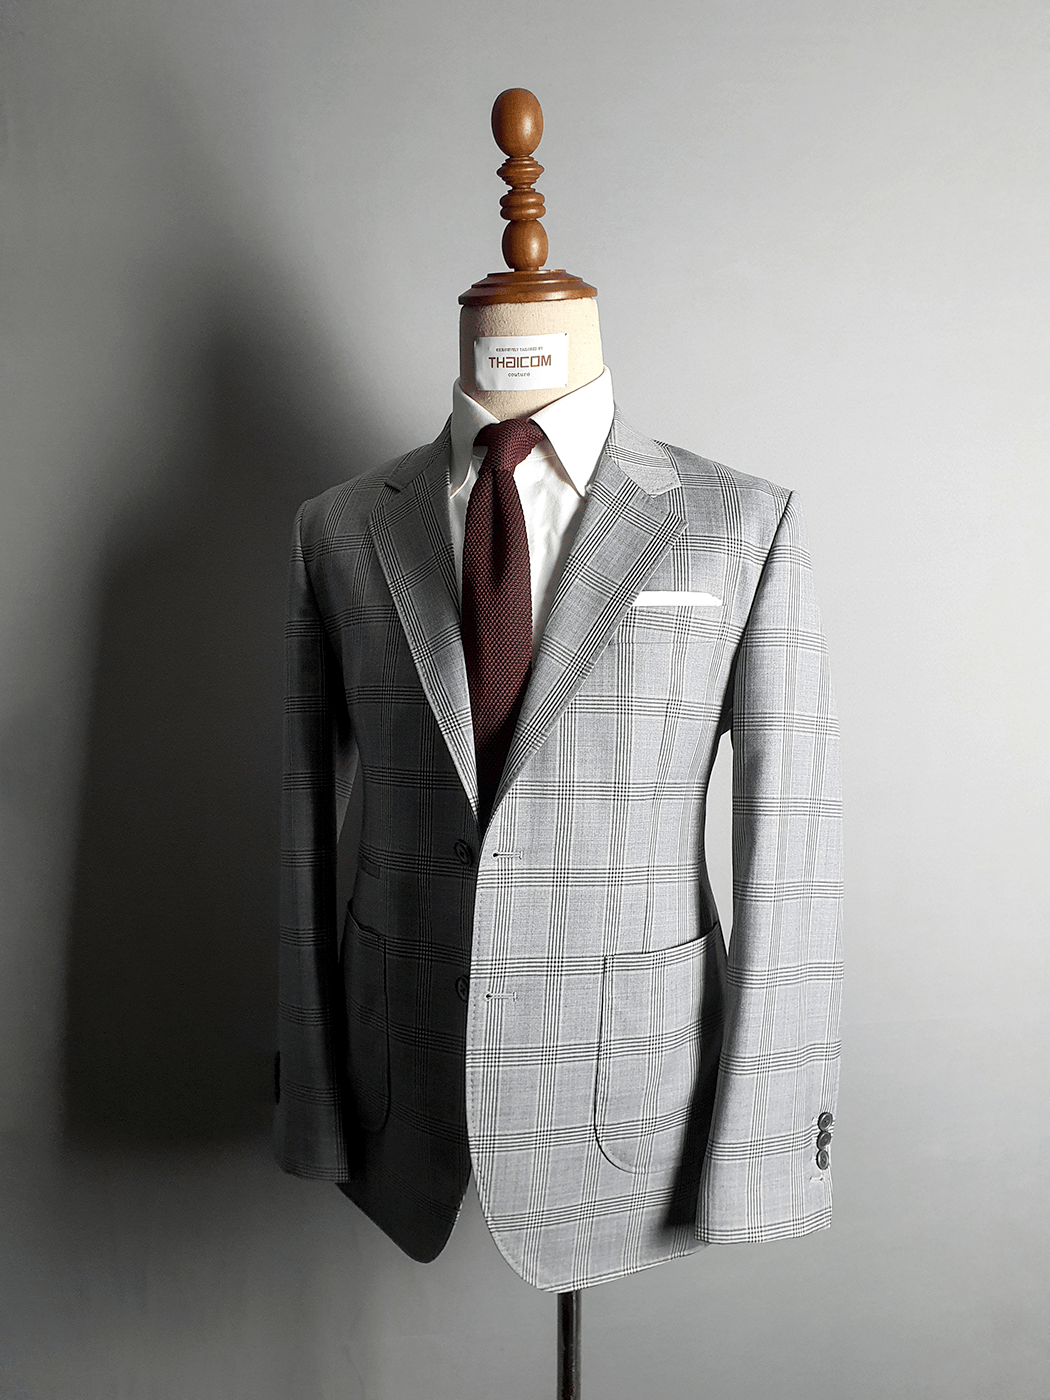 BỘ SƯU TẬP MAY ĐO VEST TAILORING COLLECTION